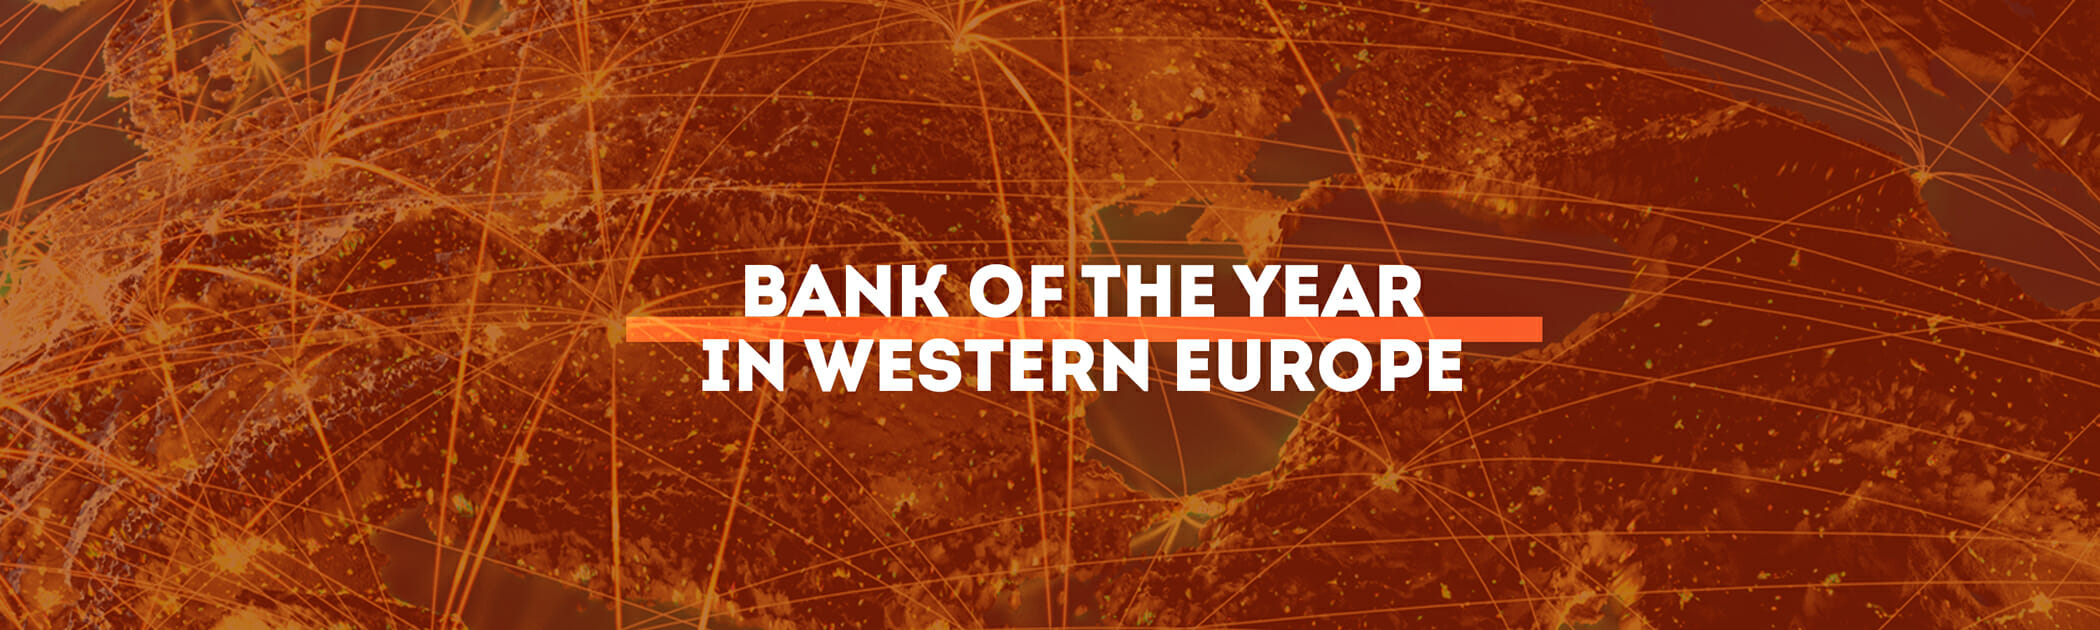 "THE BANKER AWARDS 2020: INTESA SANPAOLO WINS AS 'BANK OF THE YEAR IN WESTERN EUROPE"" AND ""BANK OF THE YEAR IN ITALY"""